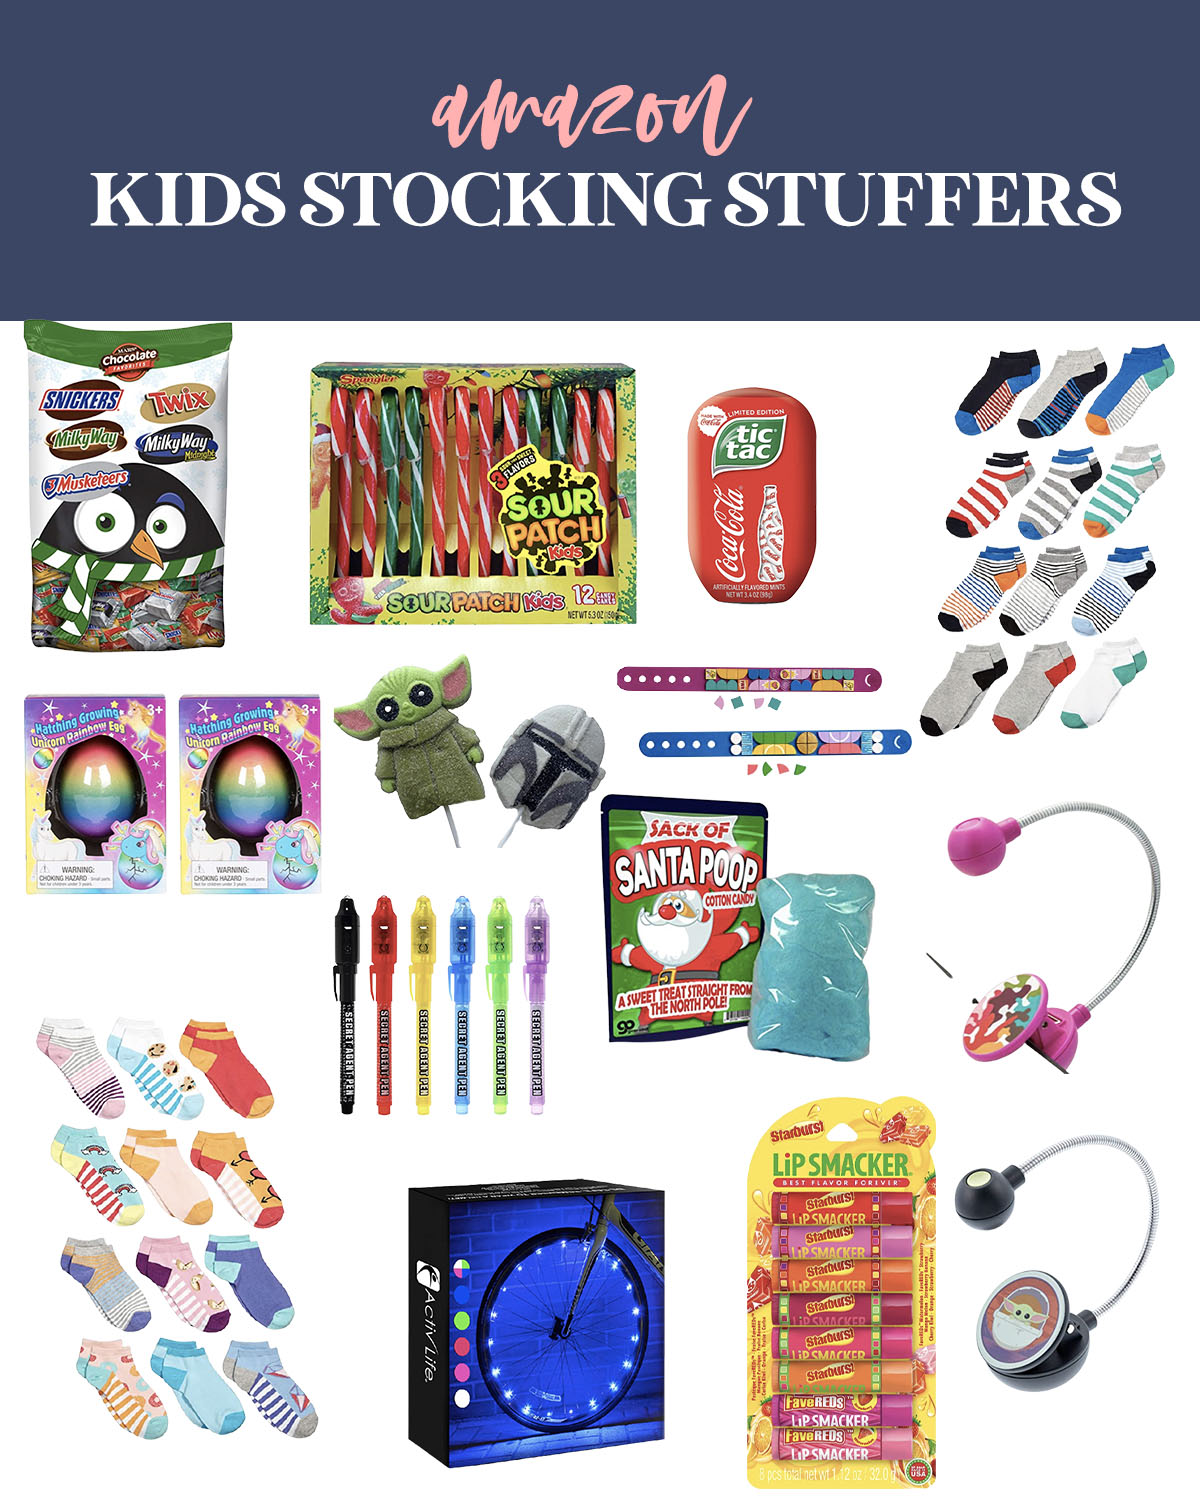 Stocking Stuffers from Amazon by popular Houston life and style blog, Fancy Ashley: collage image of crazy socks, sour patch candy canes, Santa Poop, book lights, bike tire lights, fun size candy bar bag, lip smacker set, tic-tacs, secret agent pen, and unicorn rainbow egg.